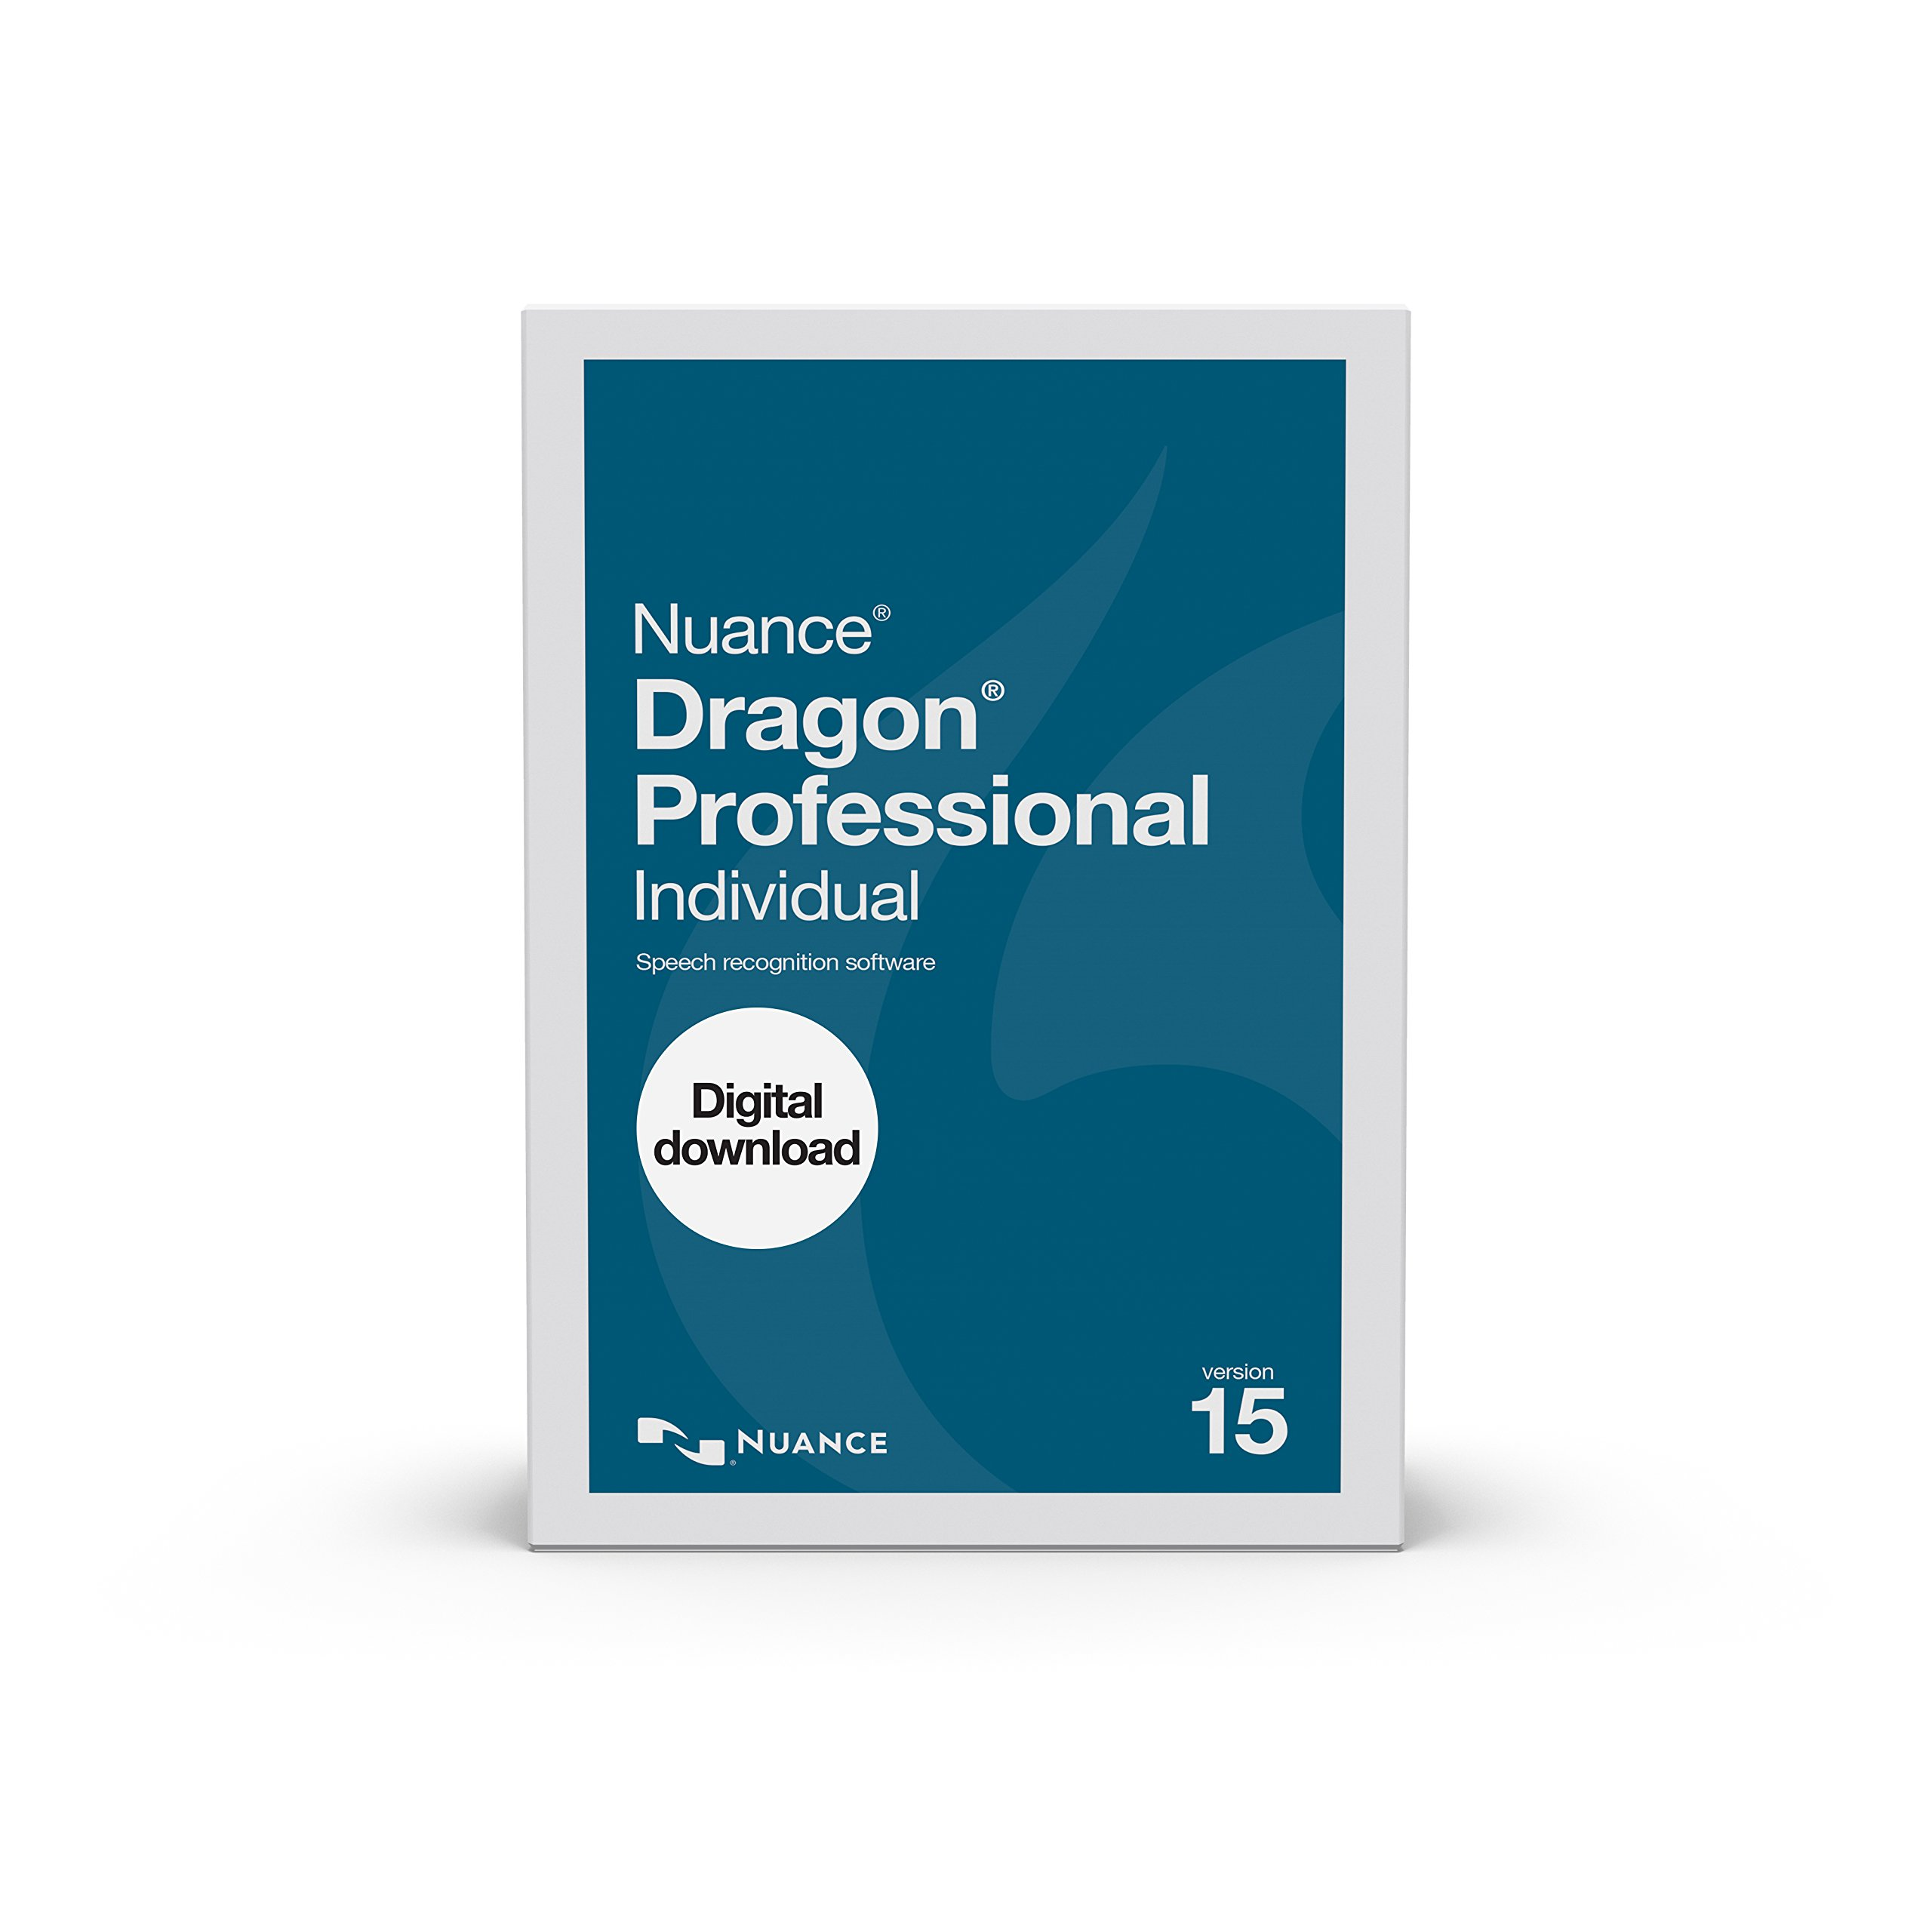 Dragon Professional Individual 15.0, Academic [PC Download] by Nuance Dragon